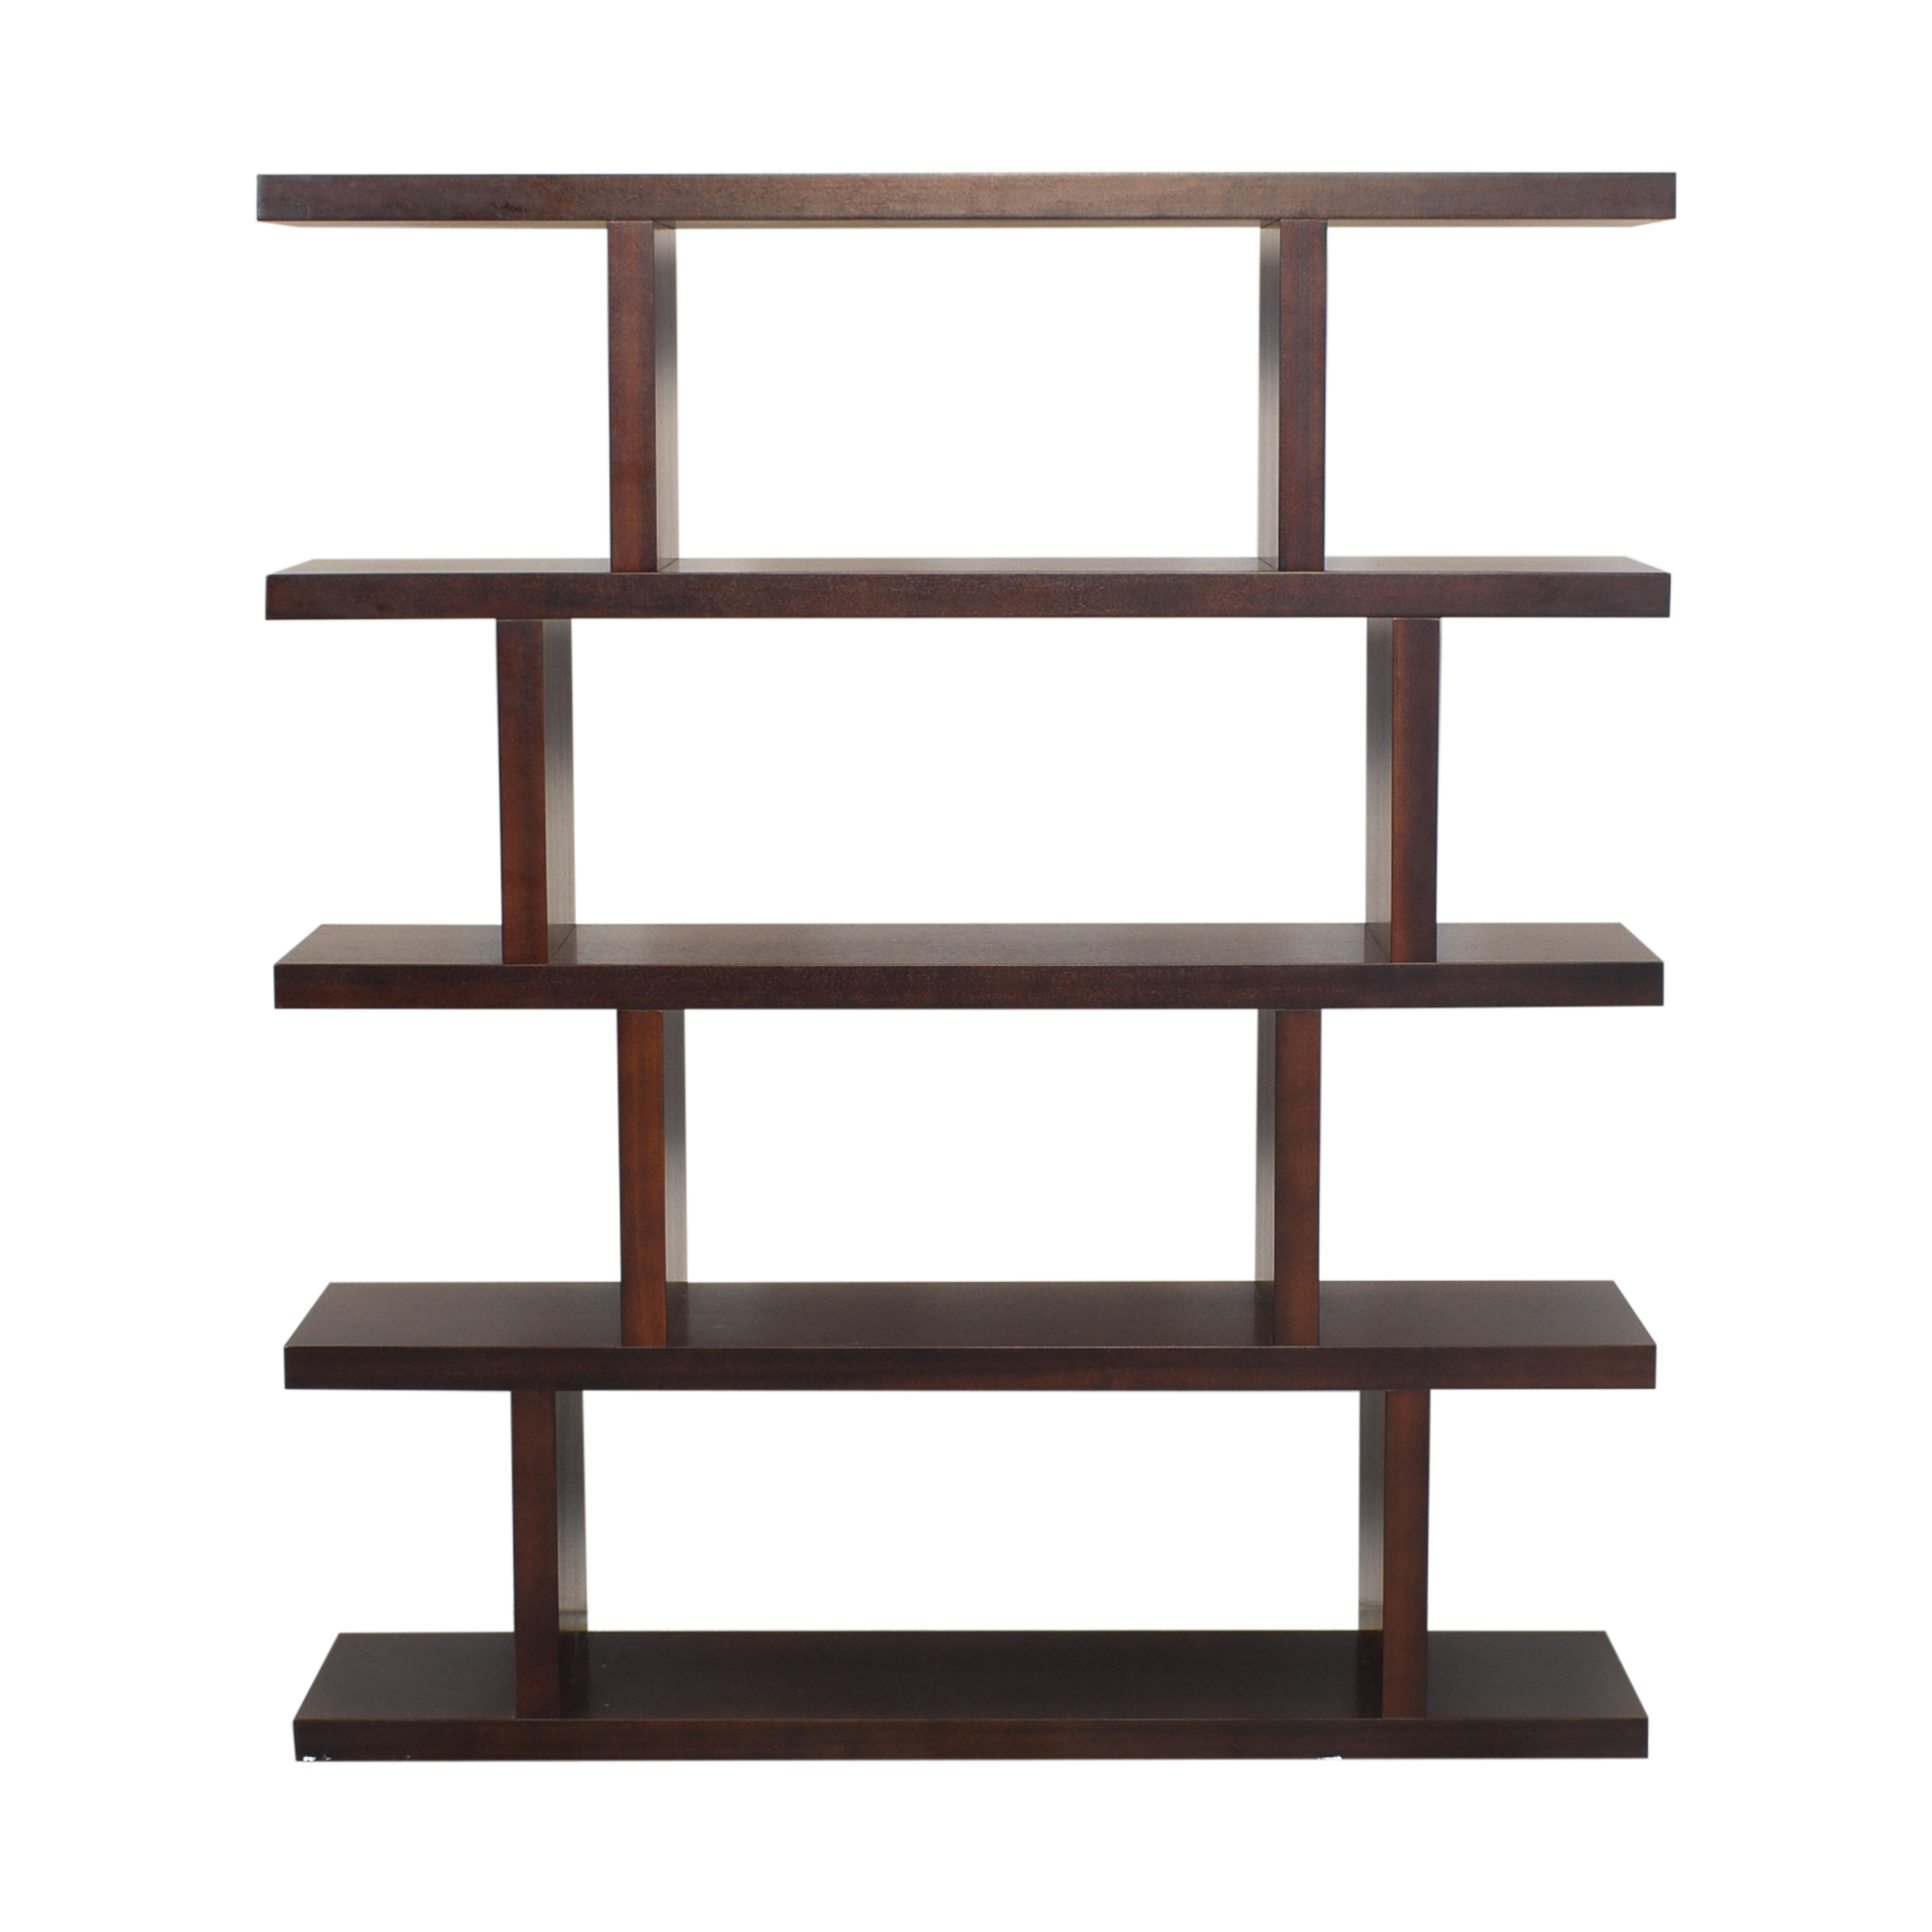 buy Crate & Barrel Bookcase Crate & Barrel Bookcases & Shelving